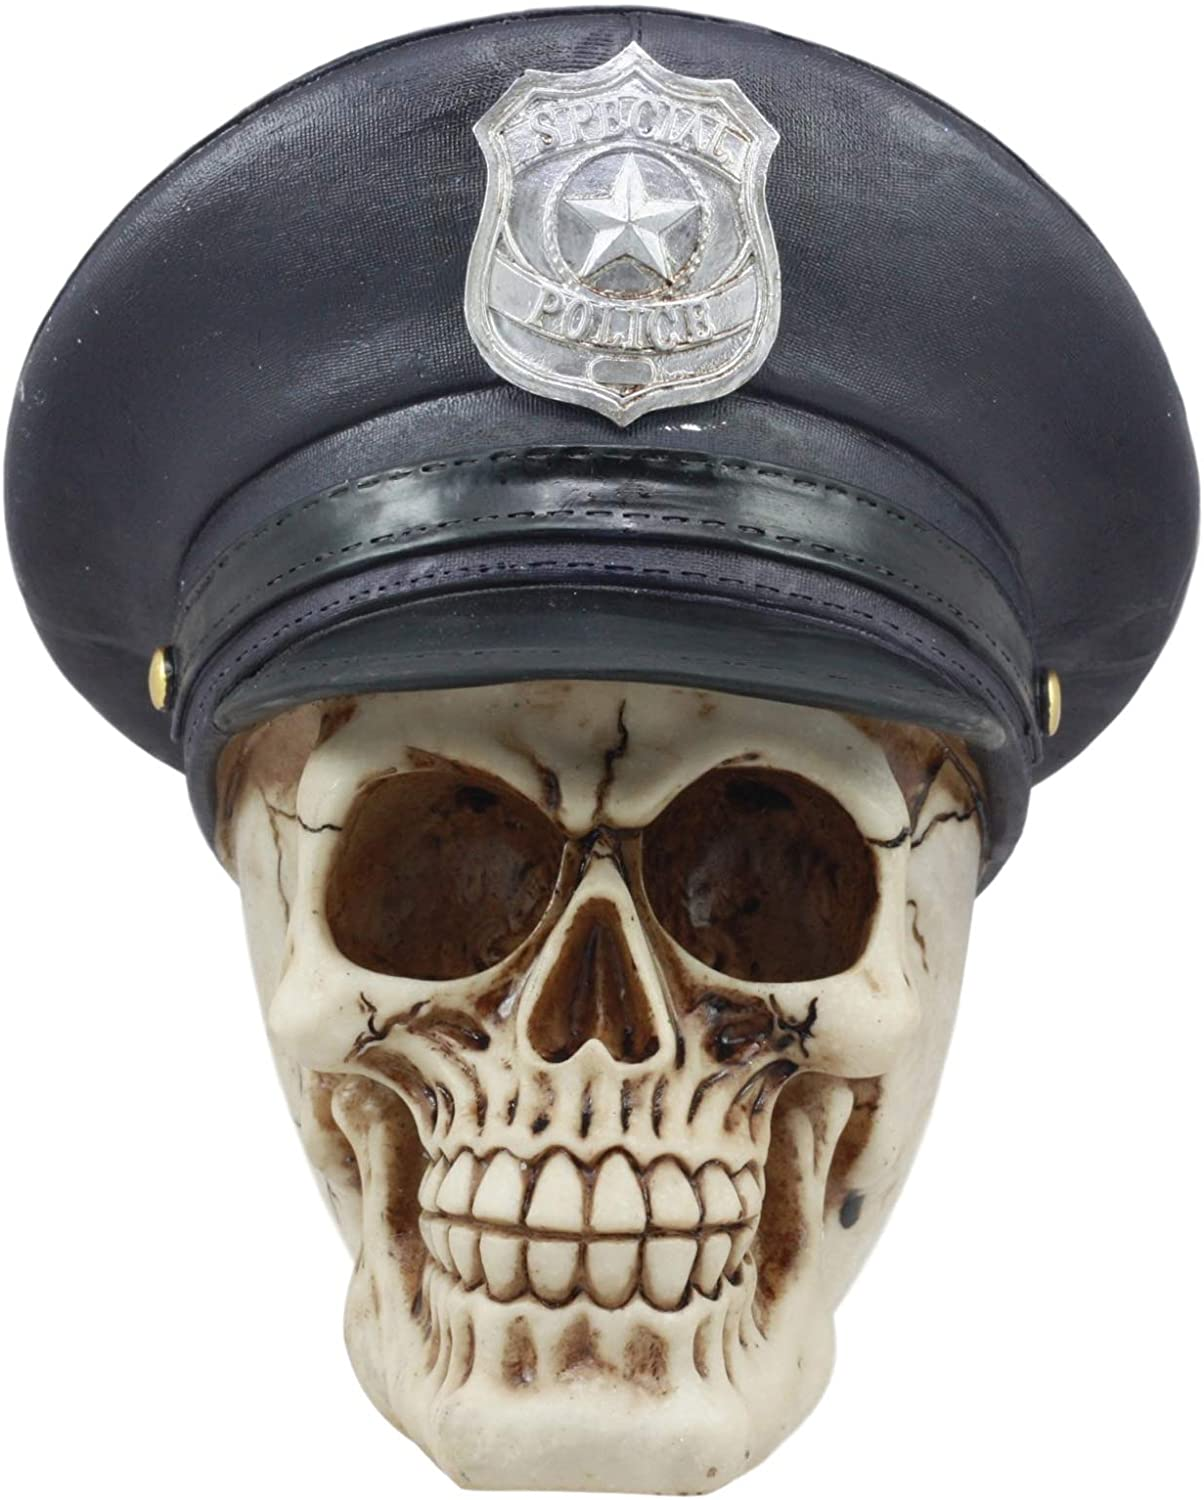 Ebros Law Enforcement Police Captain Skull Figurine 6.75 Long Cop Officer Skull with Hat Statue